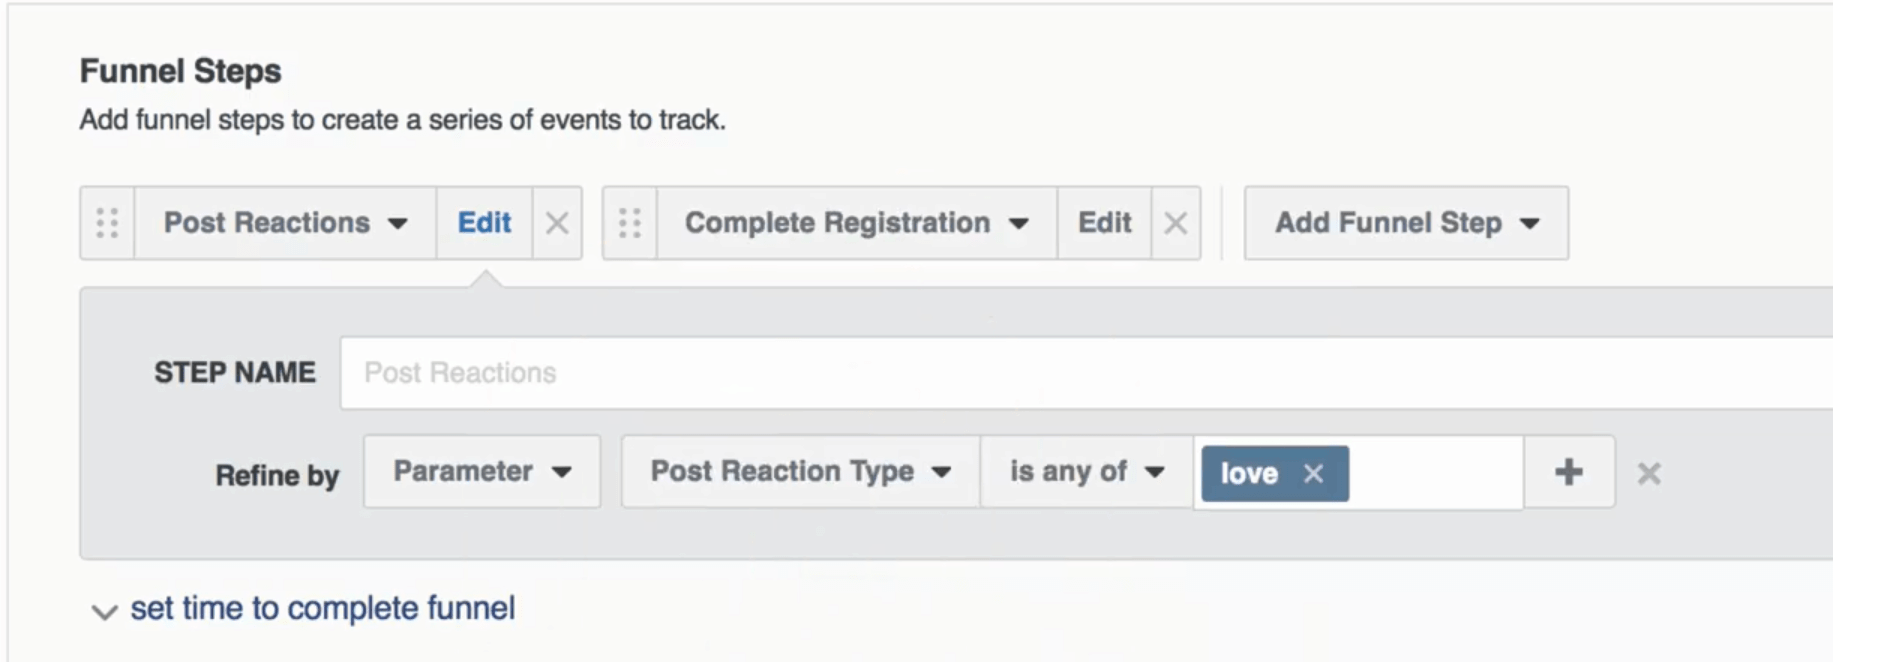 Getting Started With Facebook Analytics - Understanding And Using Facebook Analytics 8